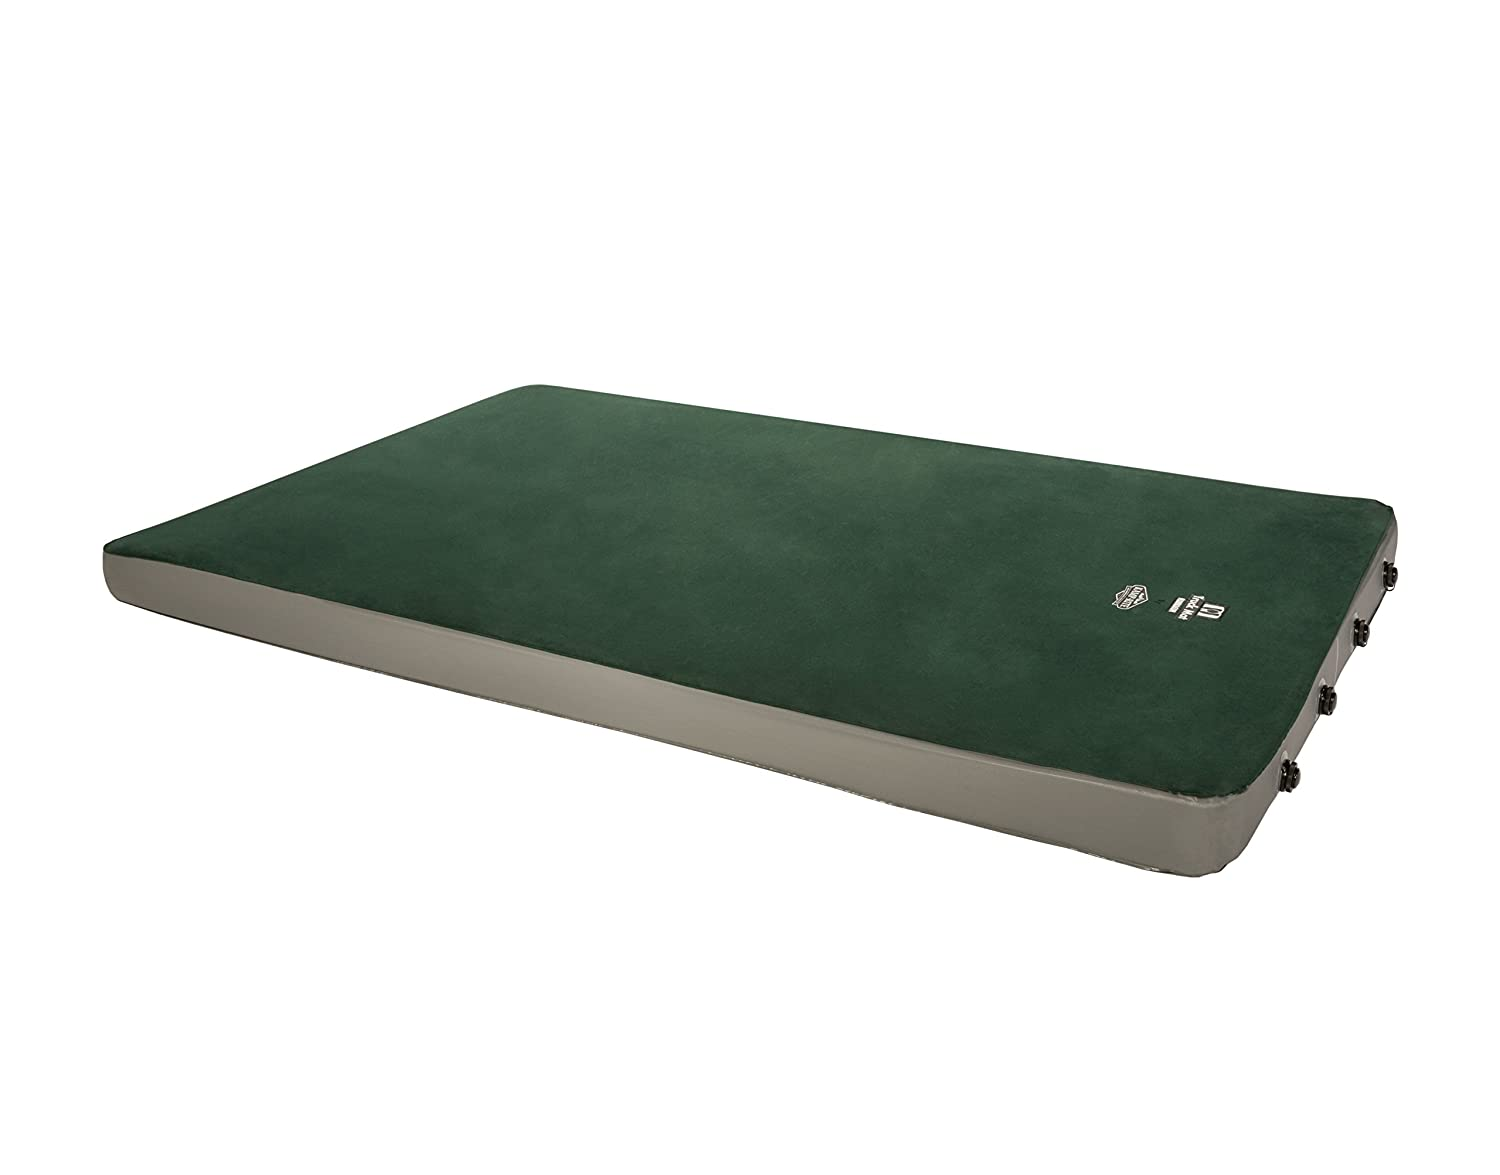 Amazon.com : Kamp-Rite Double Self Inflating Pad : Self Inflating Sleeping  Pads : Sports & Outdoors - Amazon.com : Kamp-Rite Double Self Inflating Pad : Self Inflating